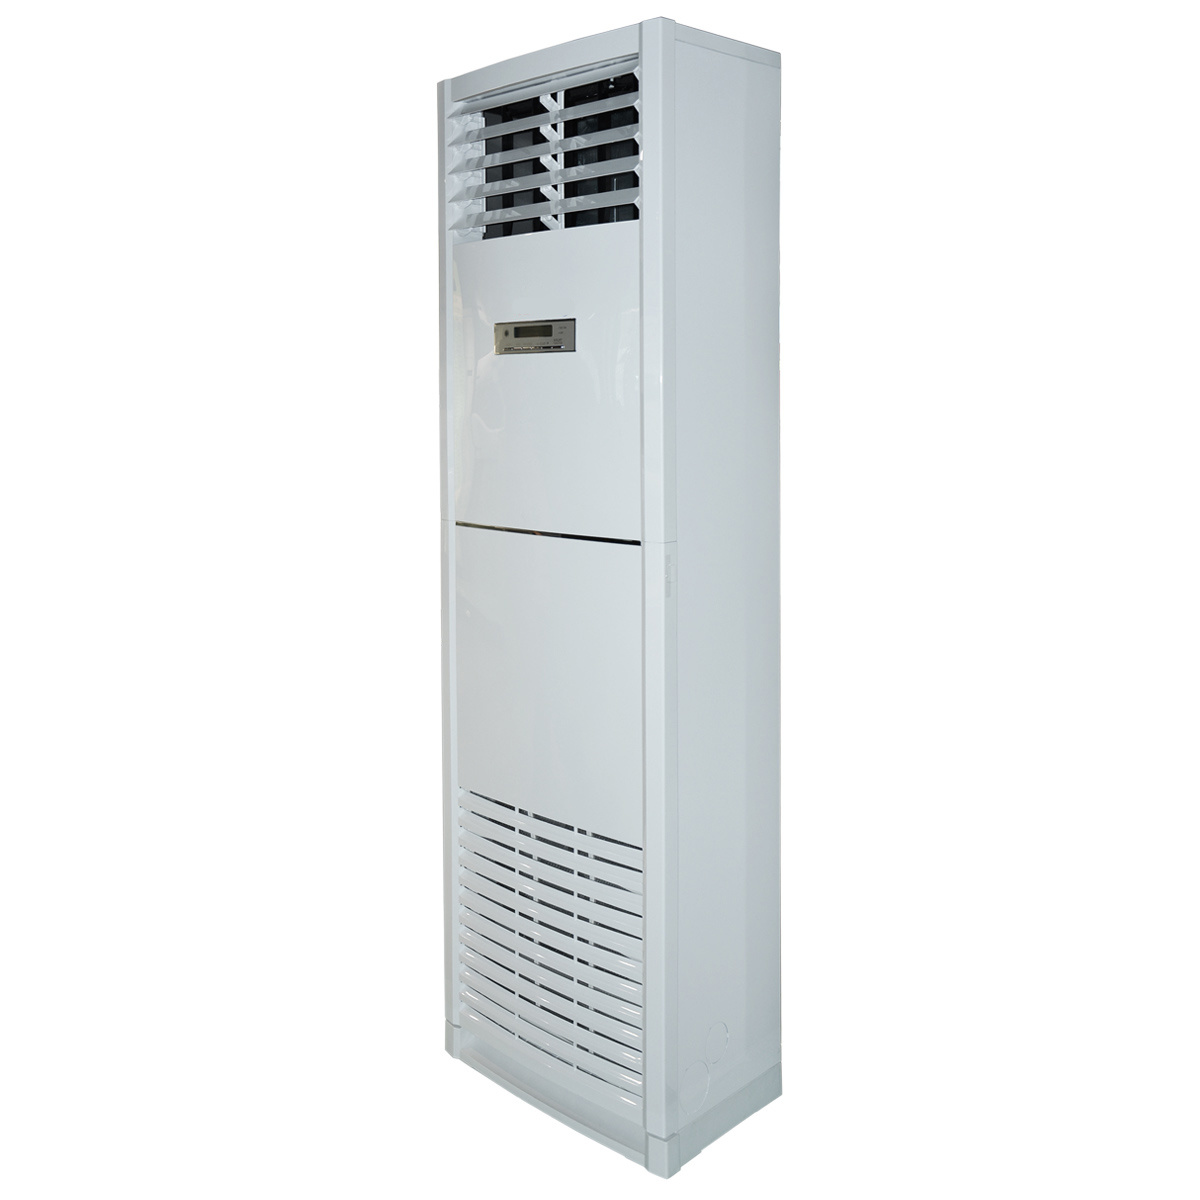 China Carrier Floor Standing Air Conditioner Photos